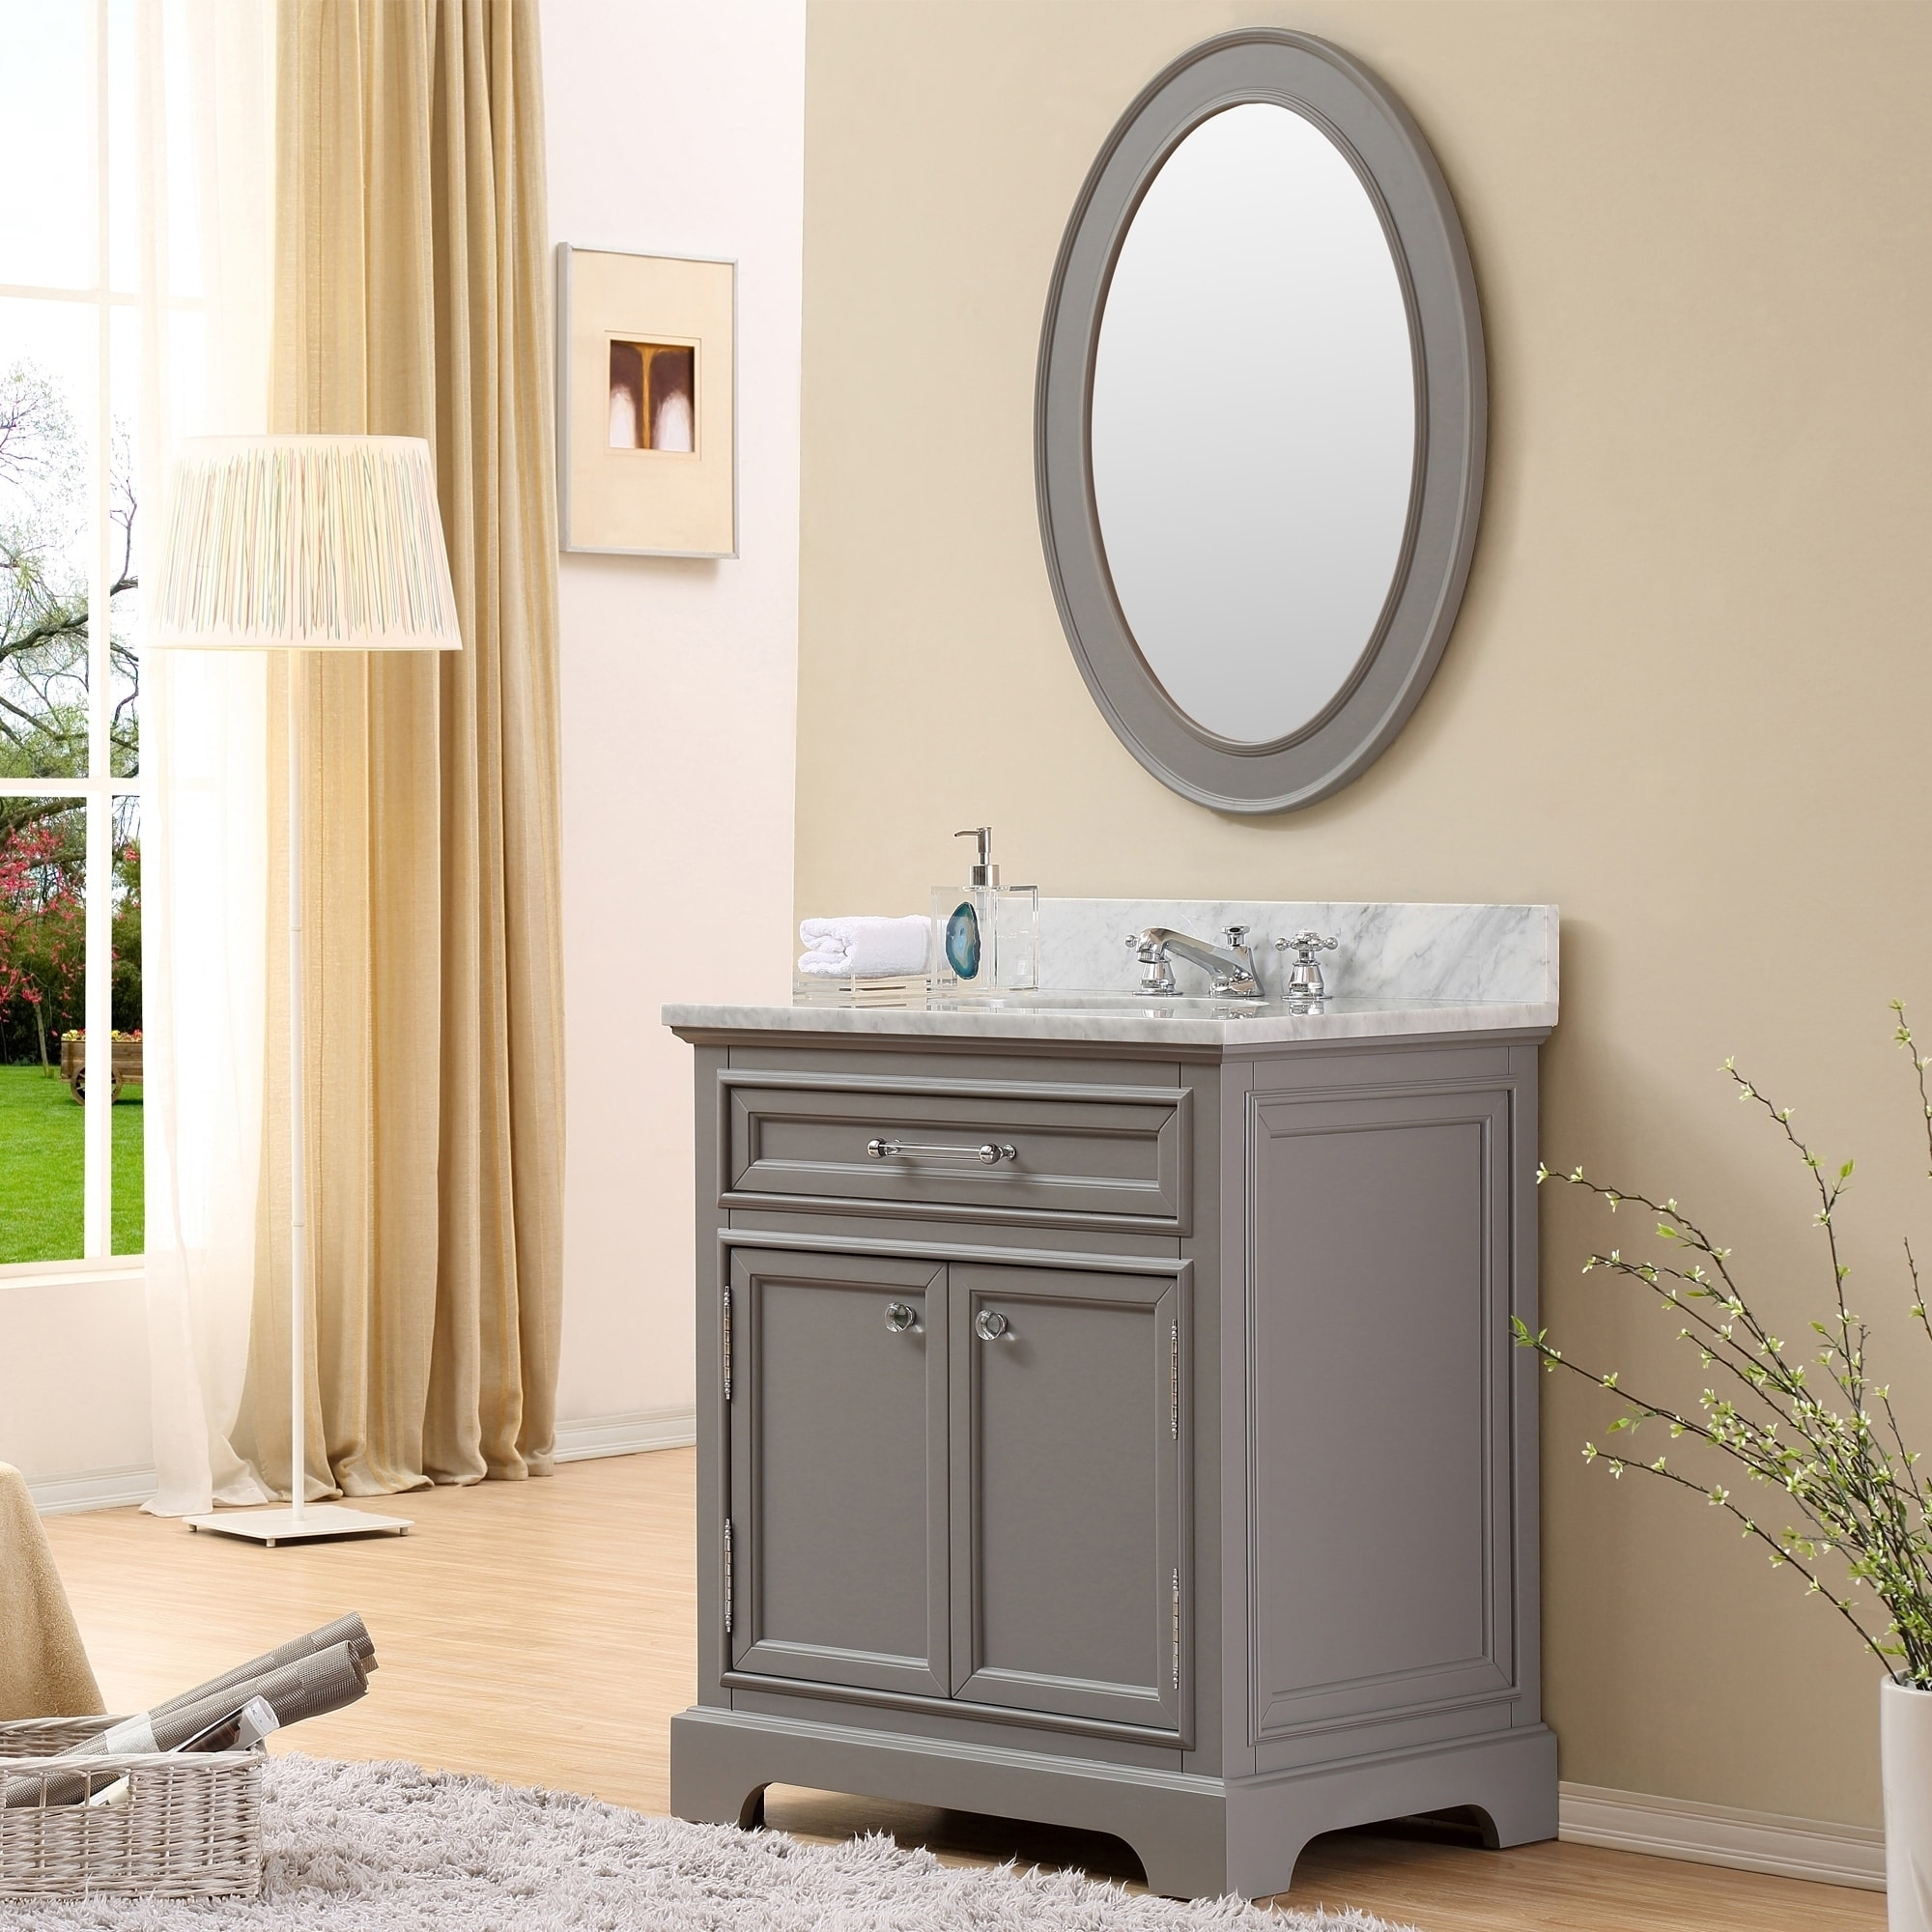 Bathroom Vanity 30 Inch Water Creation Derby 30 Inch Cashmere Grey Single Sink Bathroom Vanity With Matching Framed Mirror